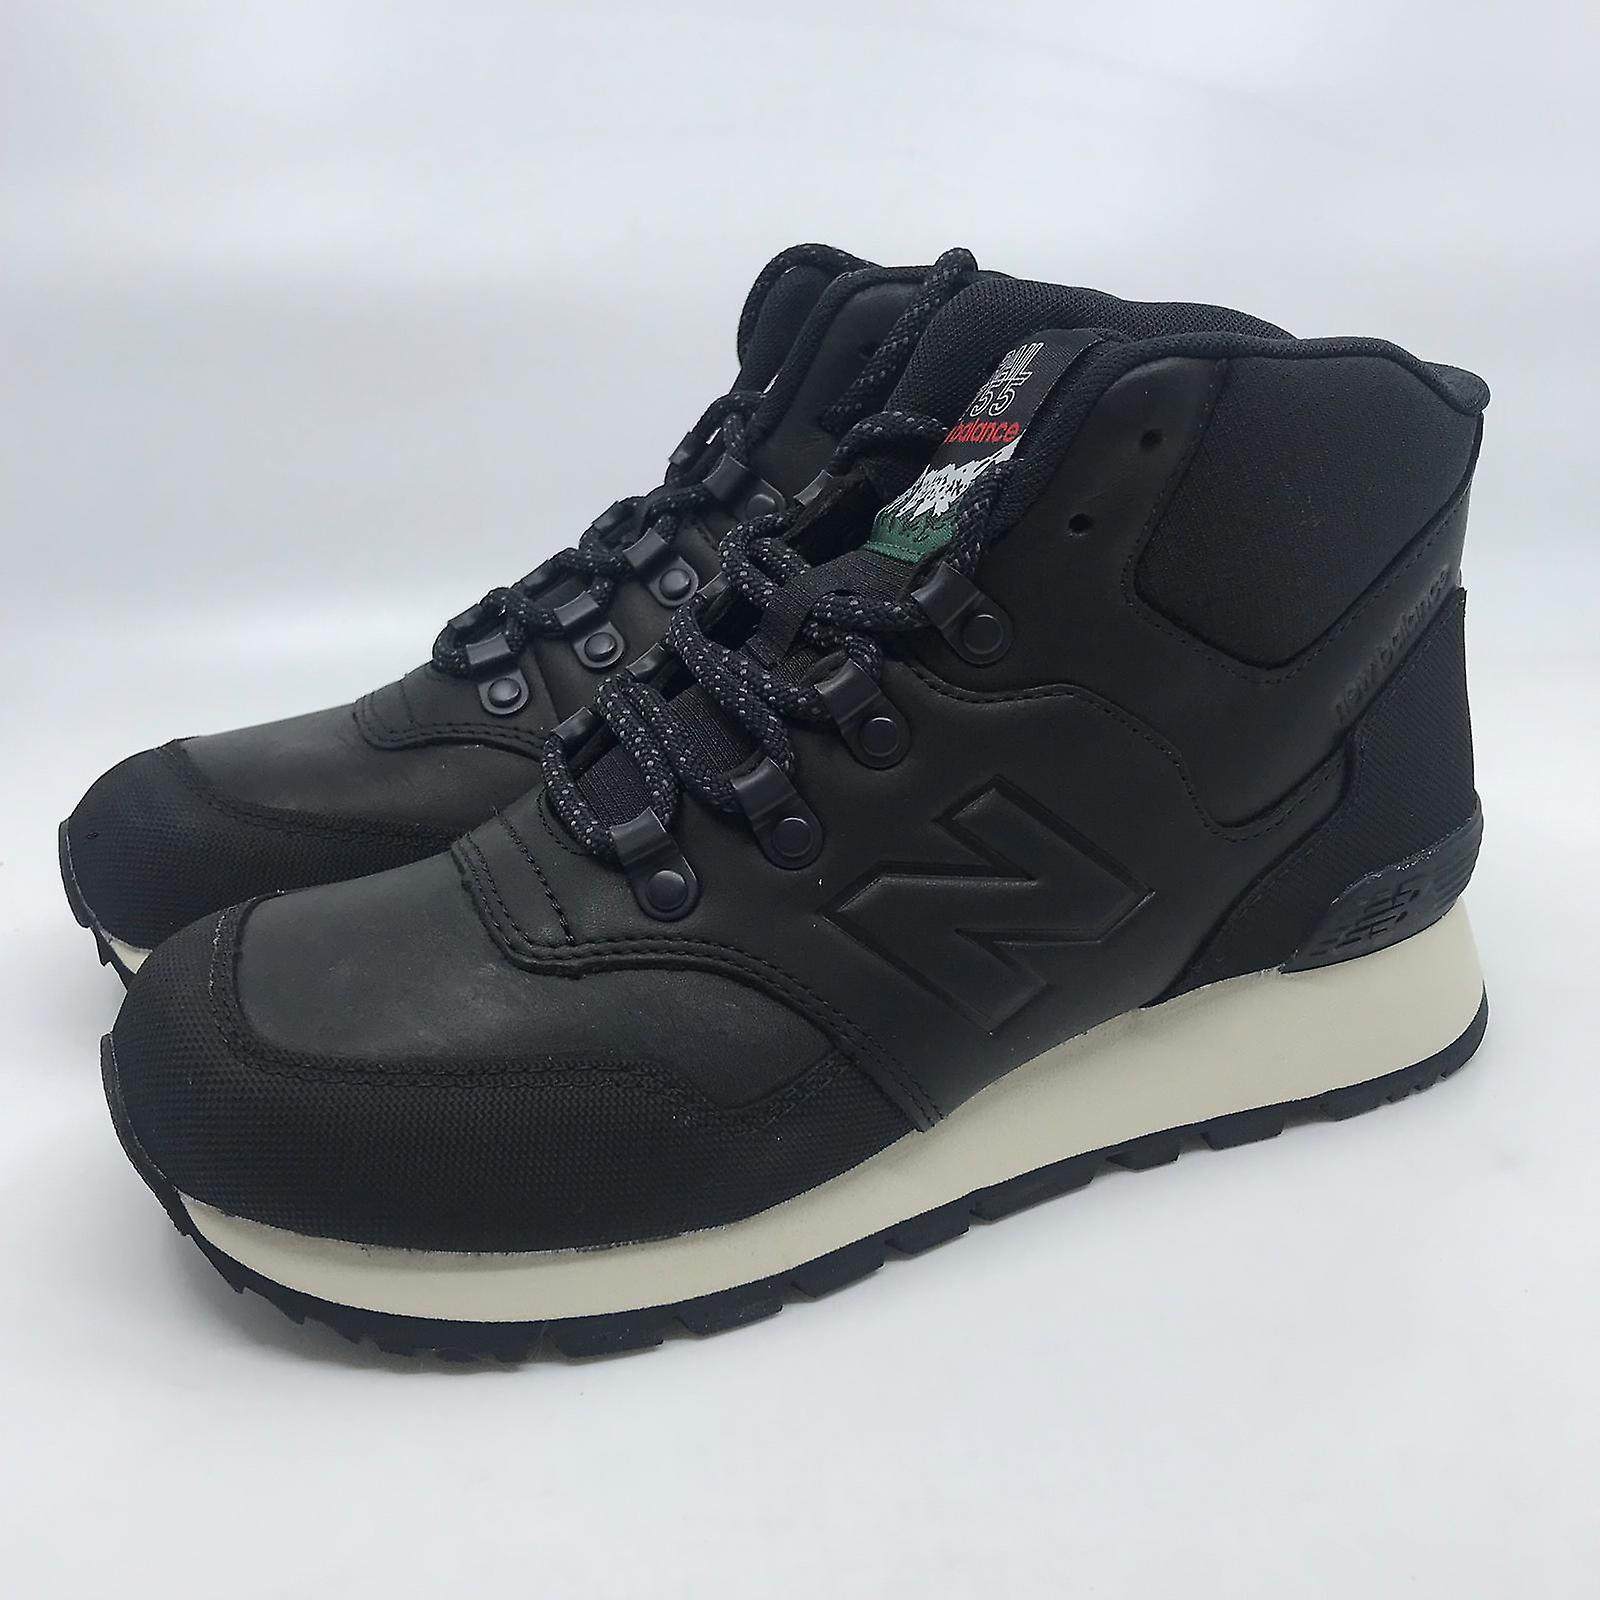 New balance HL755 mens sneaker boots turn shoes black leather new original box